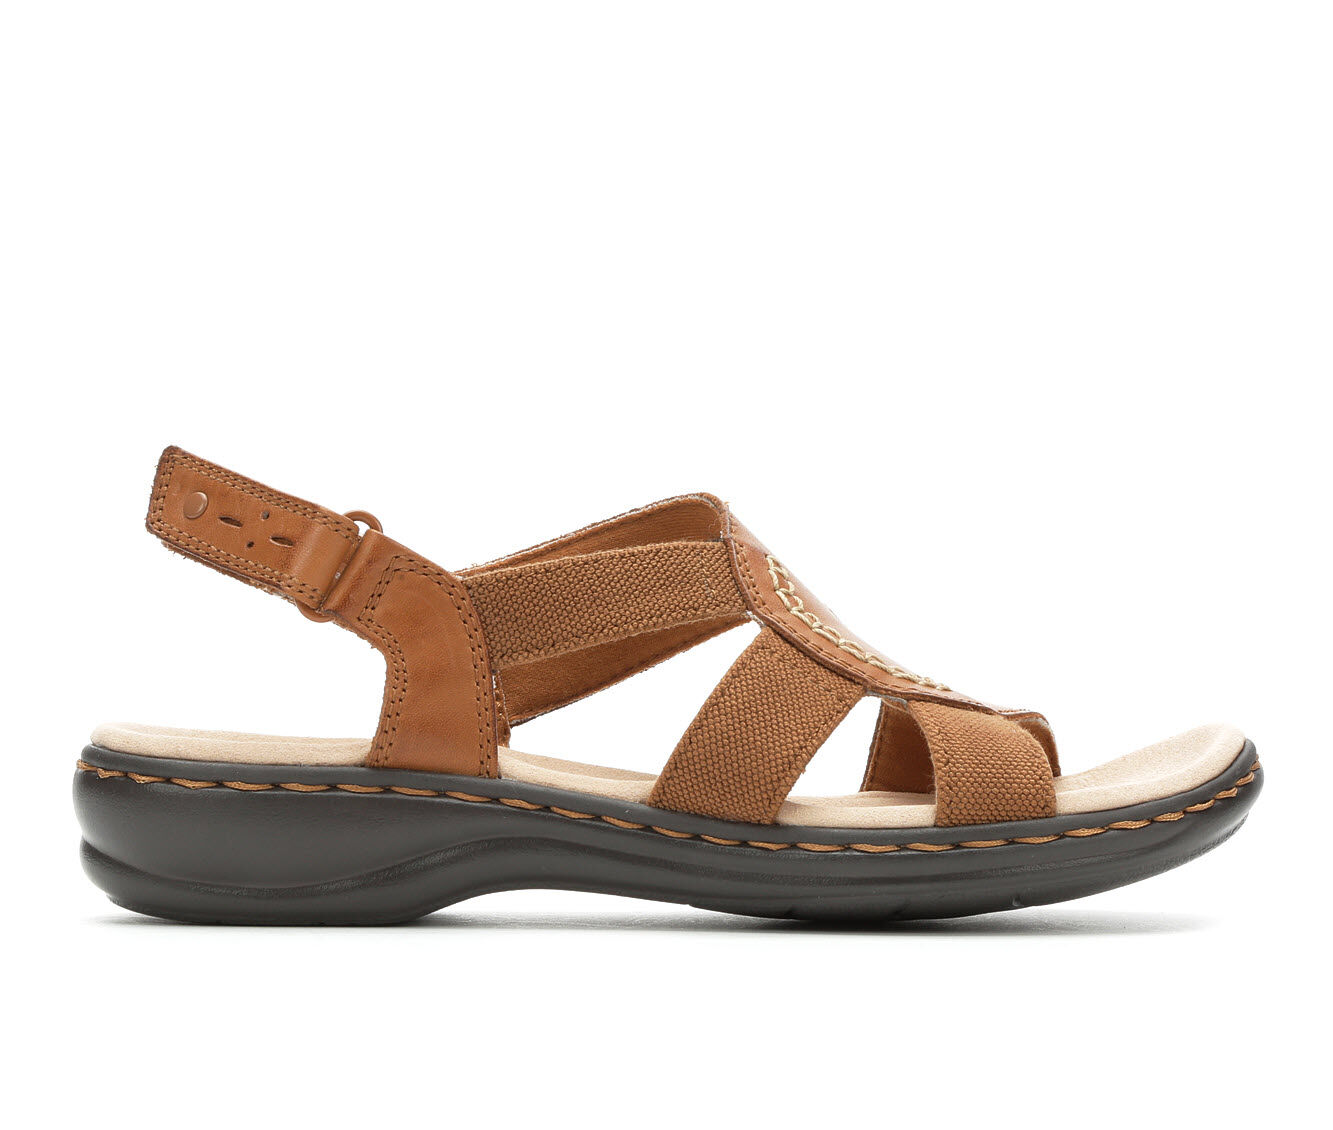 Women's Clarks Leisa Joy Sandals Tan